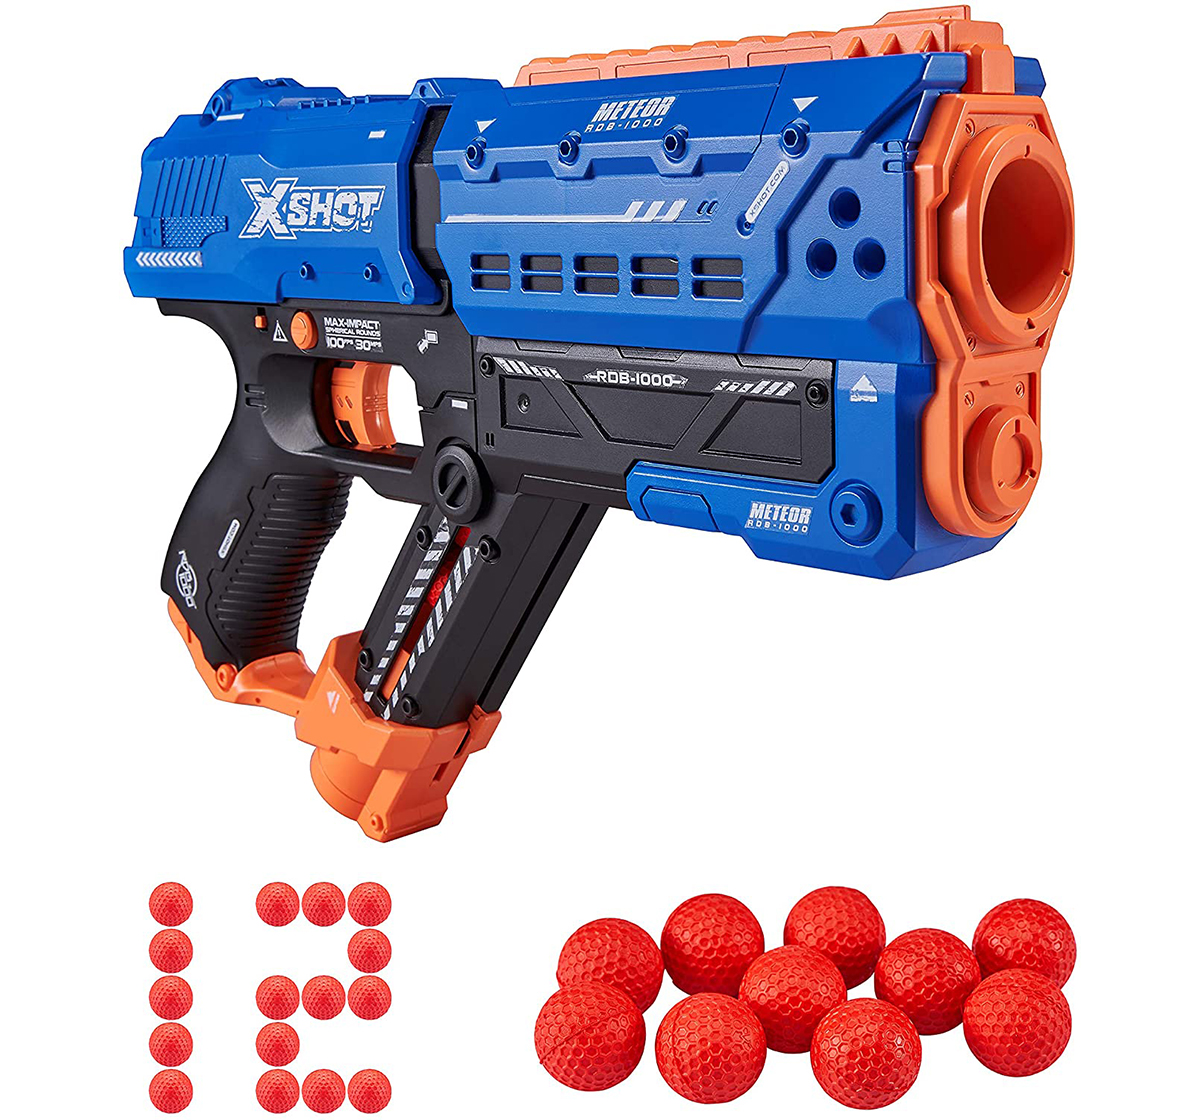 X-Shot | X-Shot Chaos Meteor Blaster with 12 Dart Balls  Blasters for Kids age 14Y+